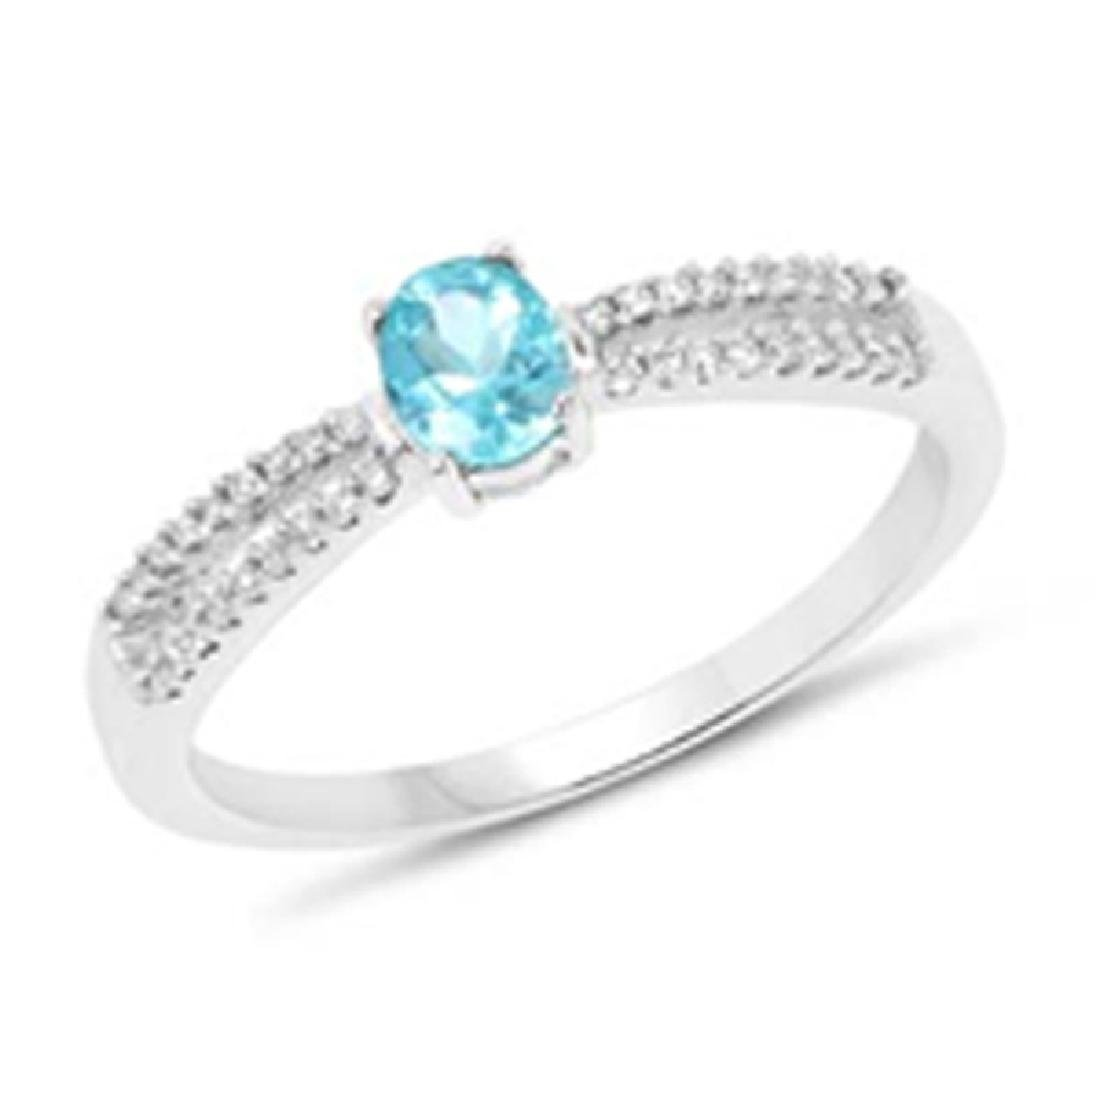 *Fine Jewelry 14KT White Gold, 2.13CT Apatite Oval And